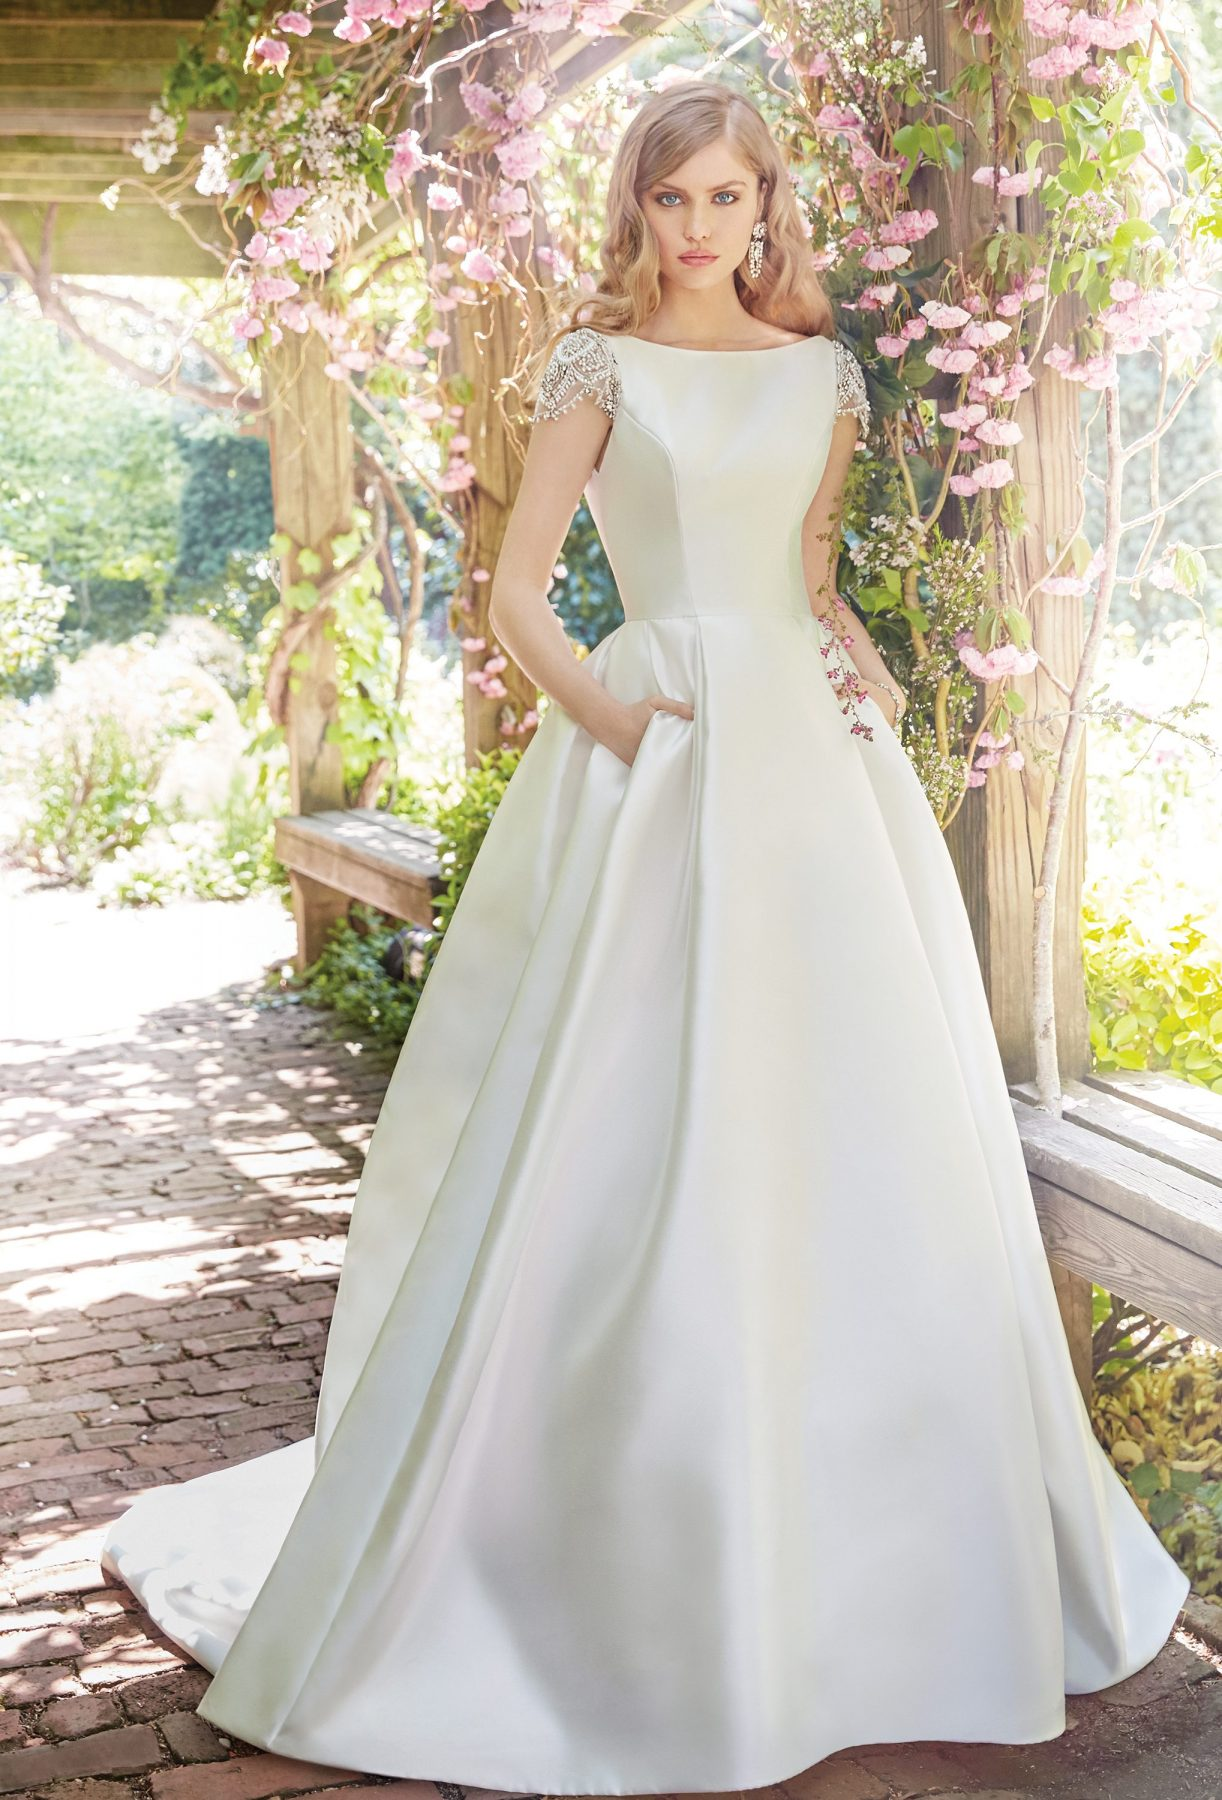 ... Ball Gown Wedding Dress by Alvina Valenta - Image 1 zoomed in